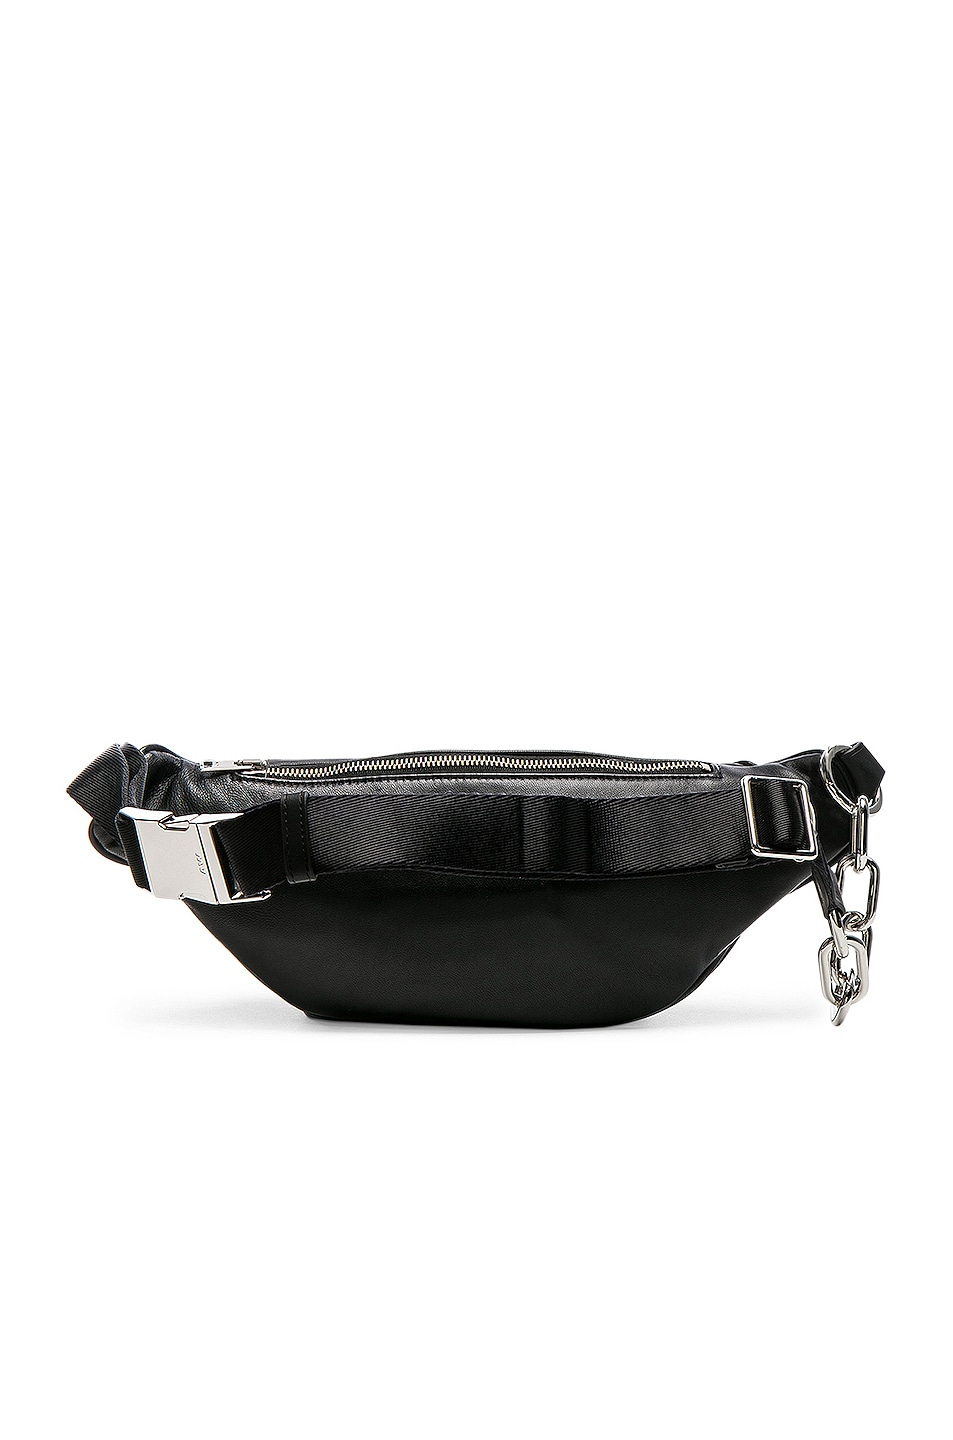 Image 3 of Alexander Wang Attica Fanny Pack in Black